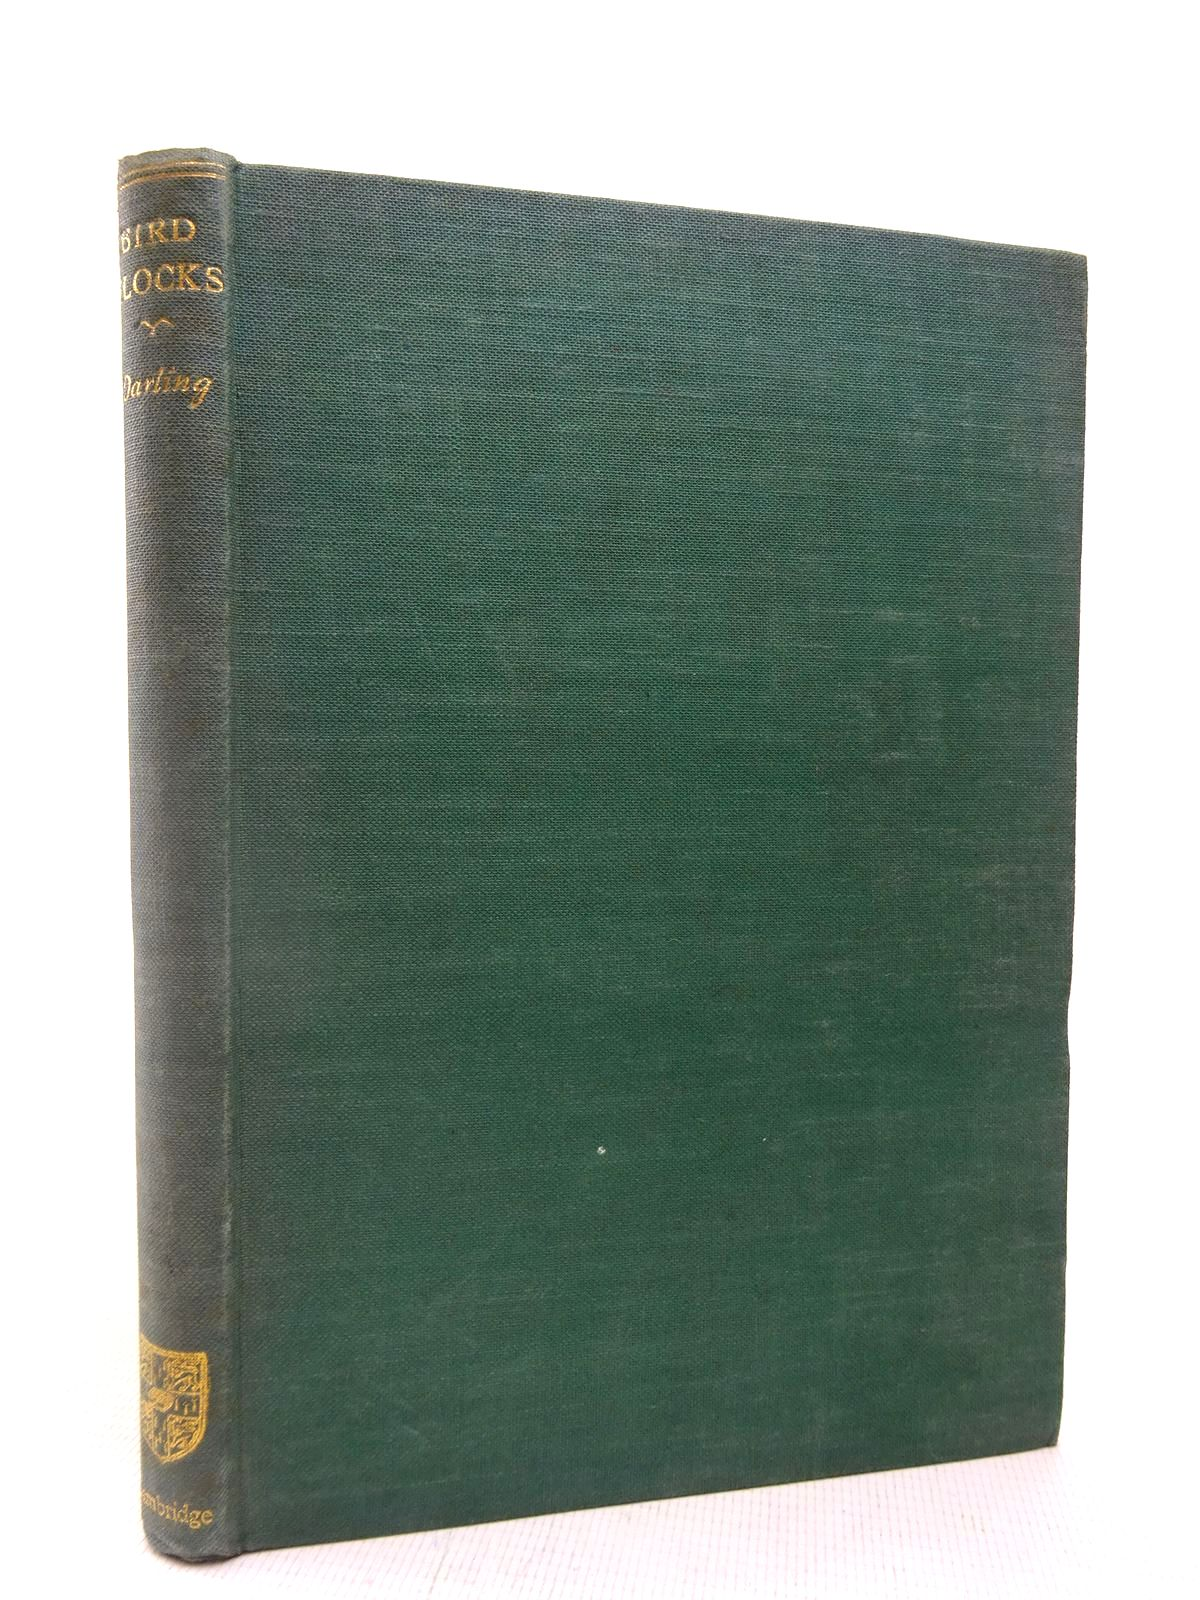 Photo of BIRD FLOCKS AND THE BREEDING CYCLE written by Darling, Frank Fraser published by Cambridge University Press (STOCK CODE: 1816486)  for sale by Stella & Rose's Books